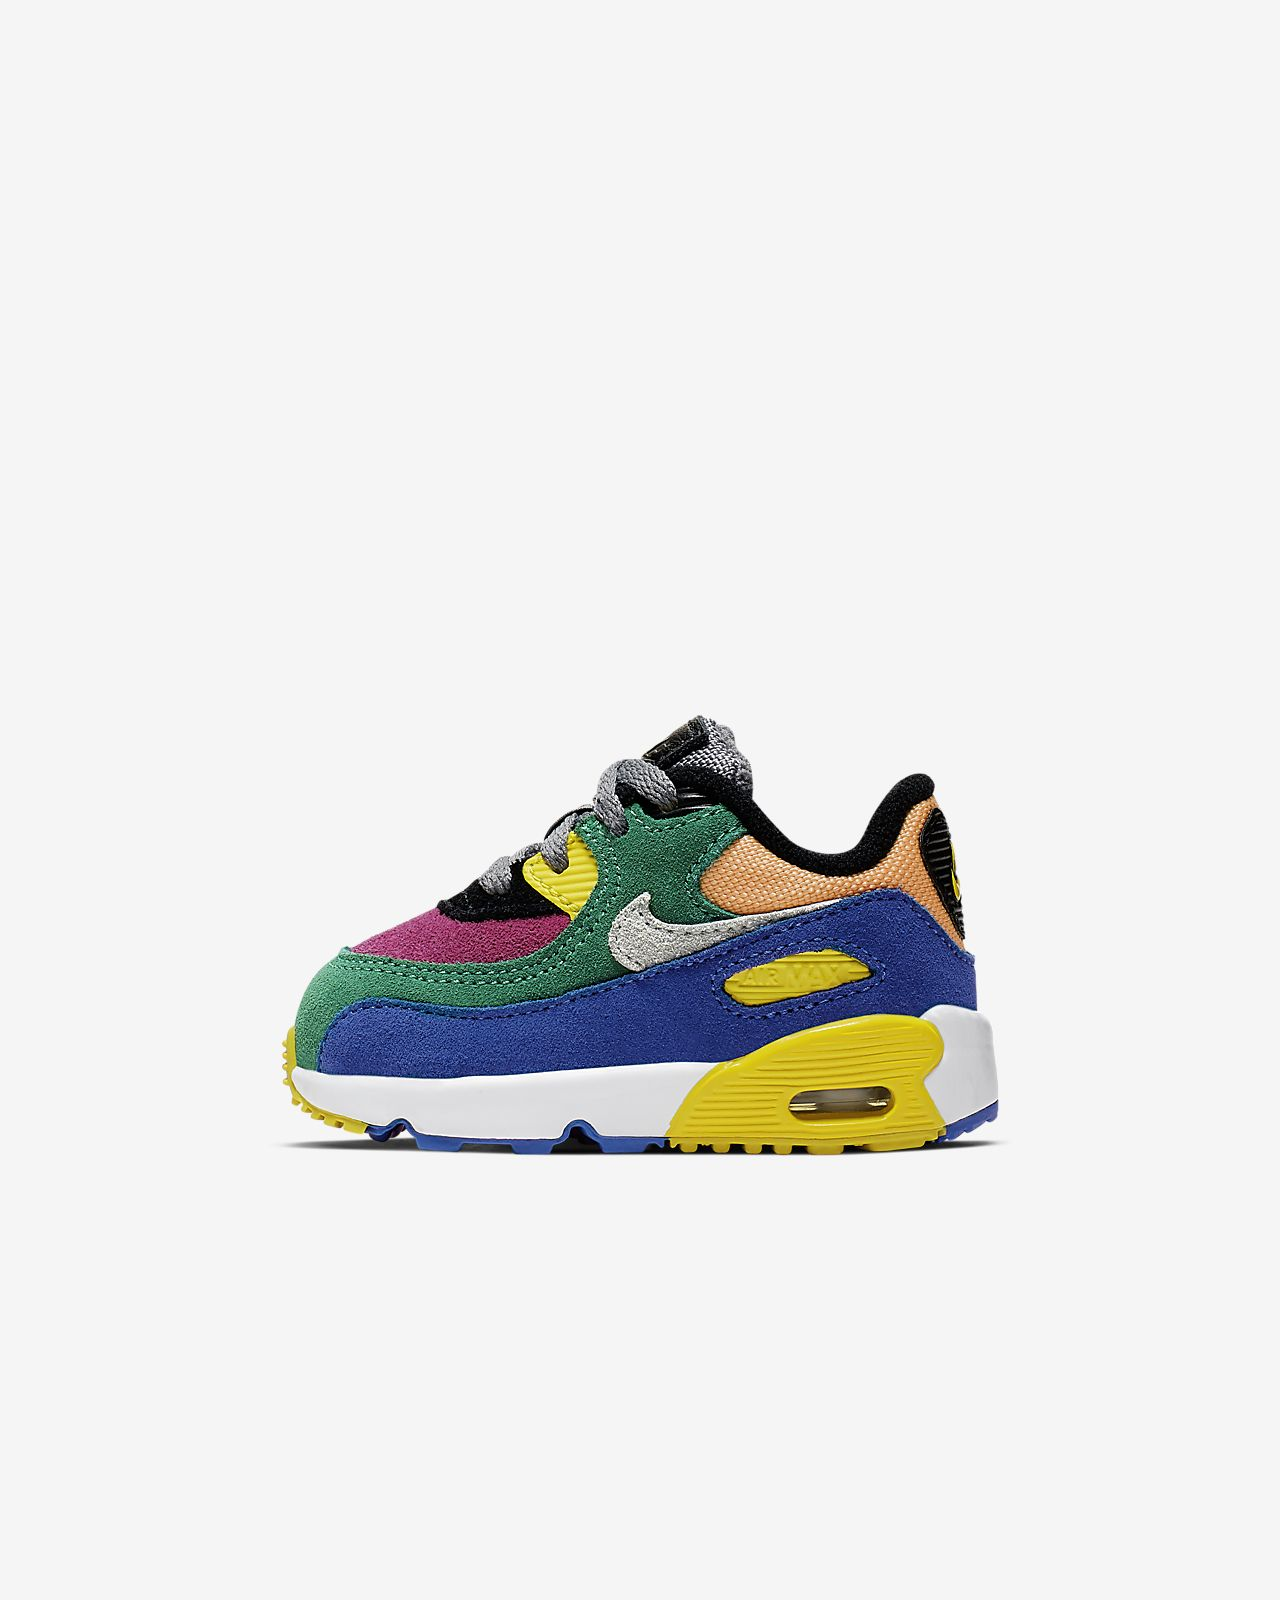 Nike Air Max 90 QS Baby/Toddler Shoe